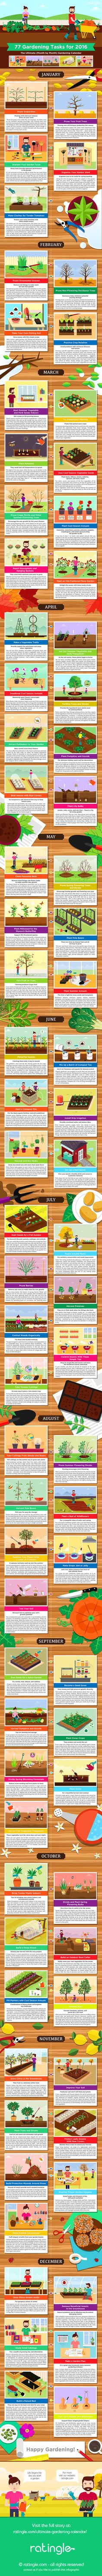 Visit the ultimate gardening calendar at: http://ratingle.com/ultimate-gardening-calendar/ With these 77 illustrated gardening tips you can enjoy your garden the whole year. Learn when to plant what, how to keep your garden tools in shape and how to protect tender plants from frost. A fun gardening infographic for everyone. Keywords: garden planting calendar, gardening calendar, garden calendar, gardening tips, how to start a garden